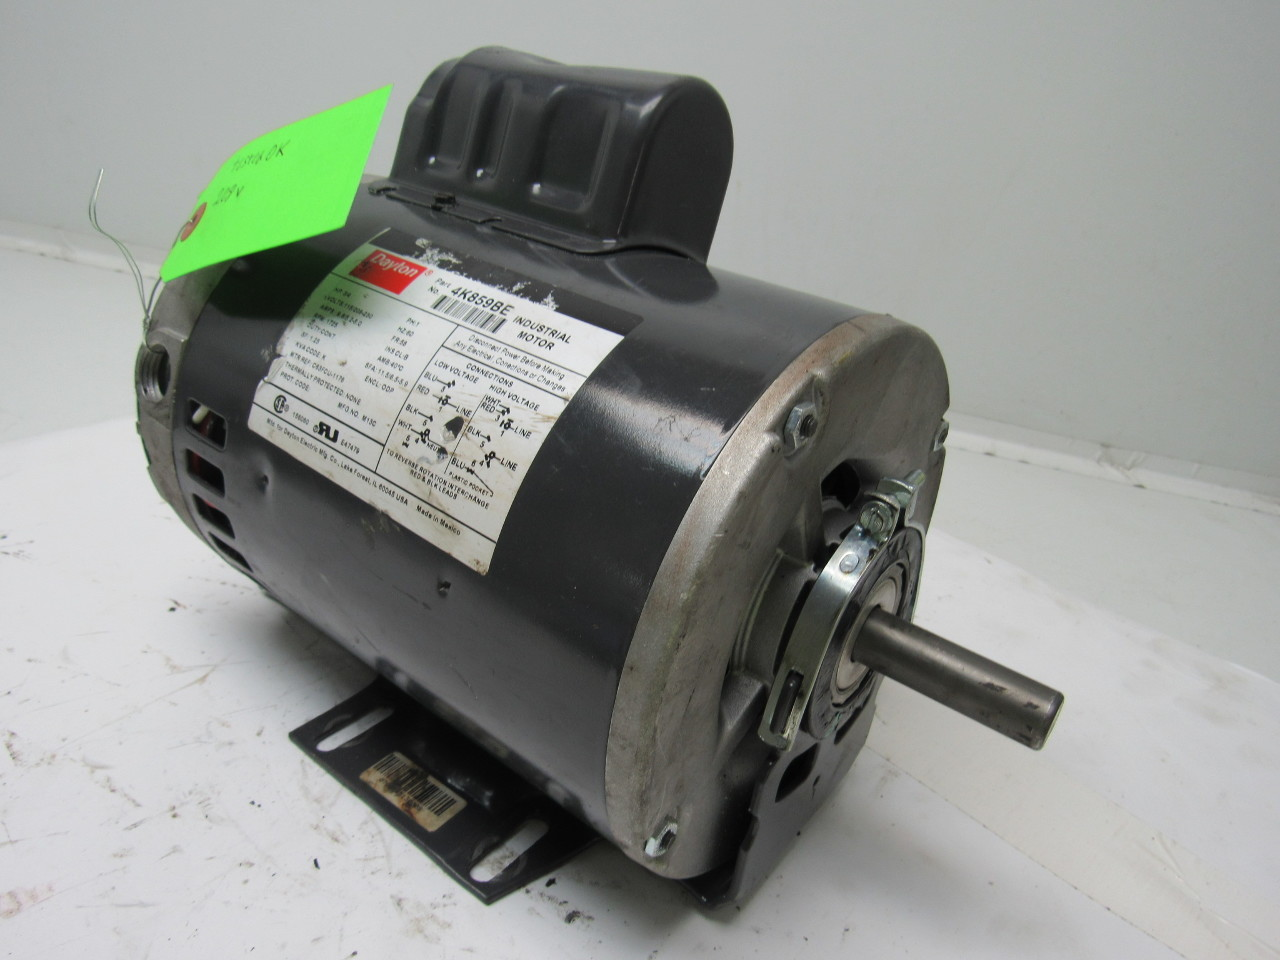 Motor Start Capacitor 110v Wiring Diagram Engine Control Dayton Electric Cw Ccw Fan Compressor Single Phase Diagrams